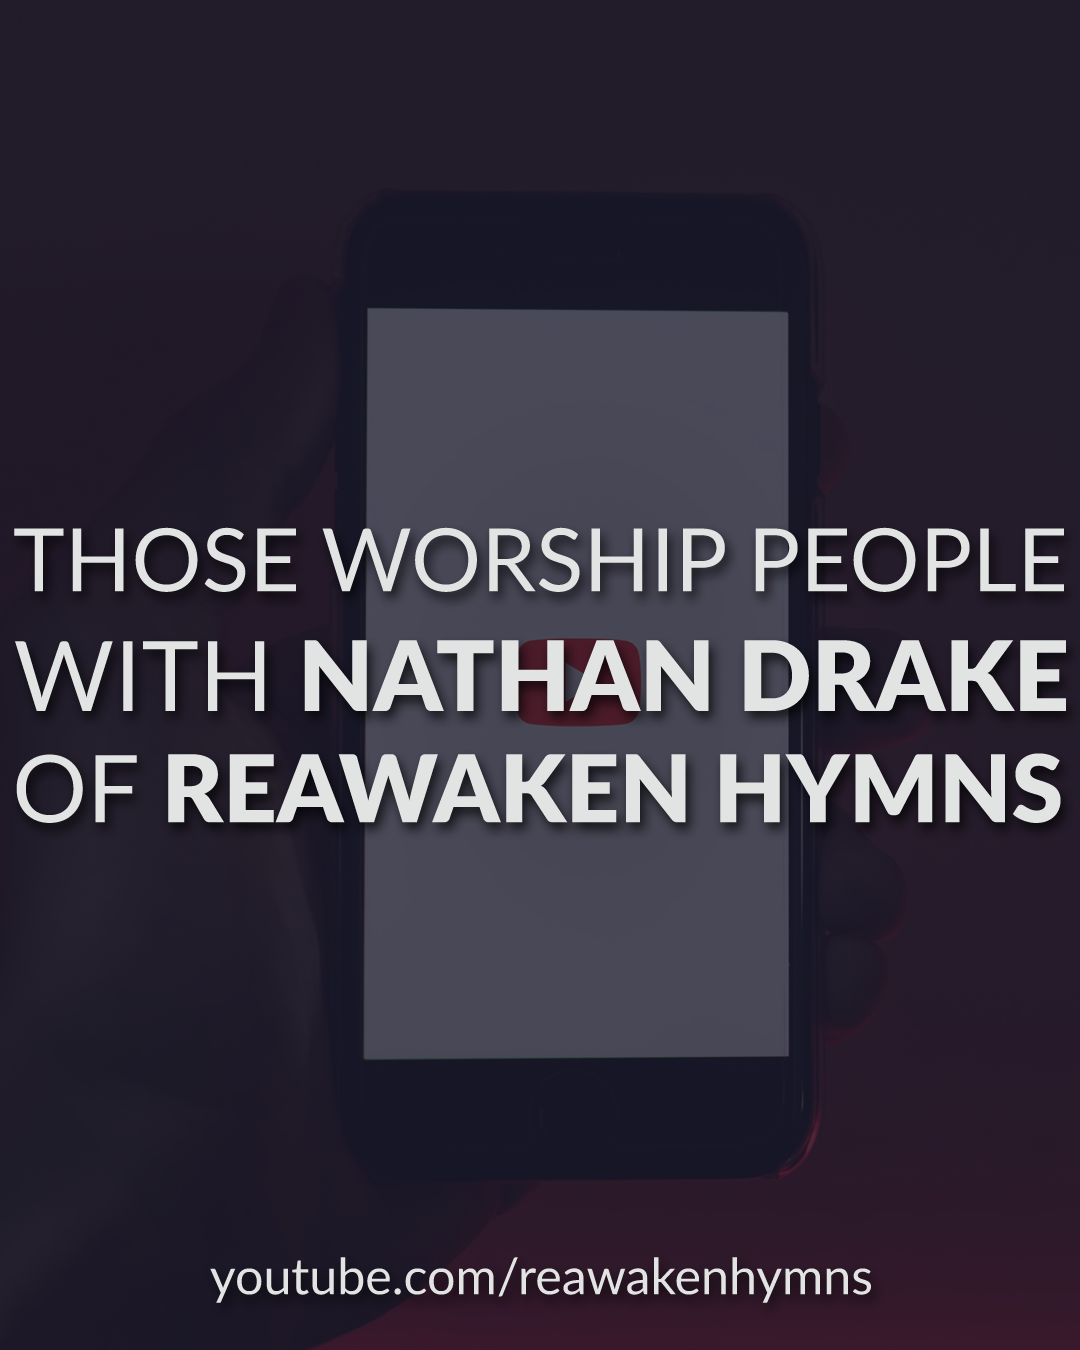 Those Worship People With Nathan Drake From Reawaken Hymns